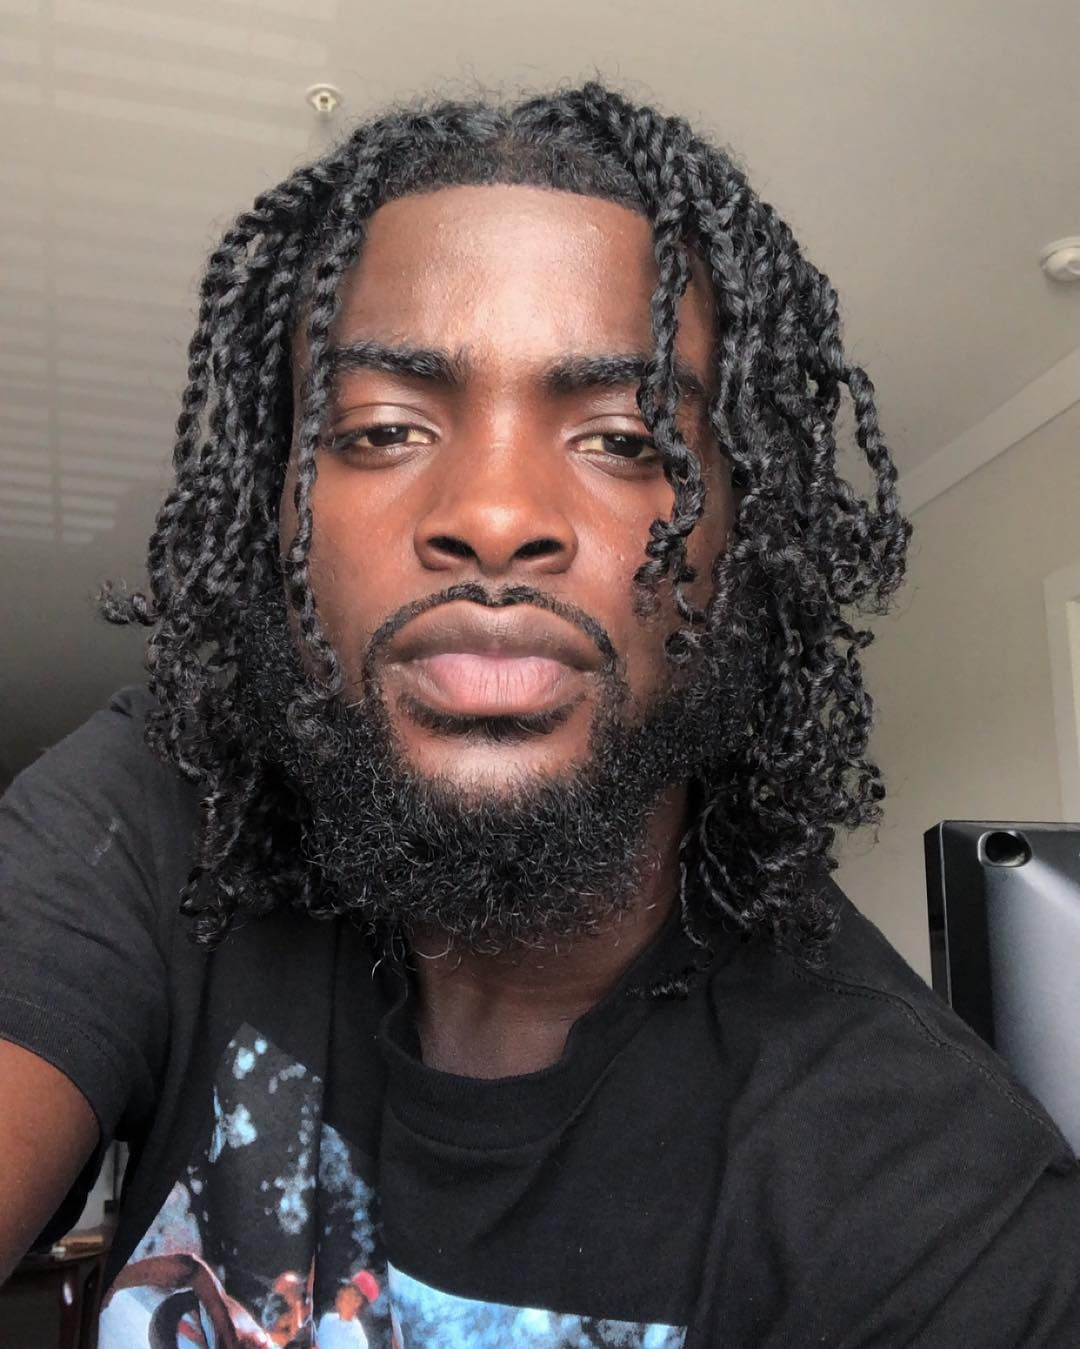 Two Strand Twist For Short Hair Men Best Hairstyles For